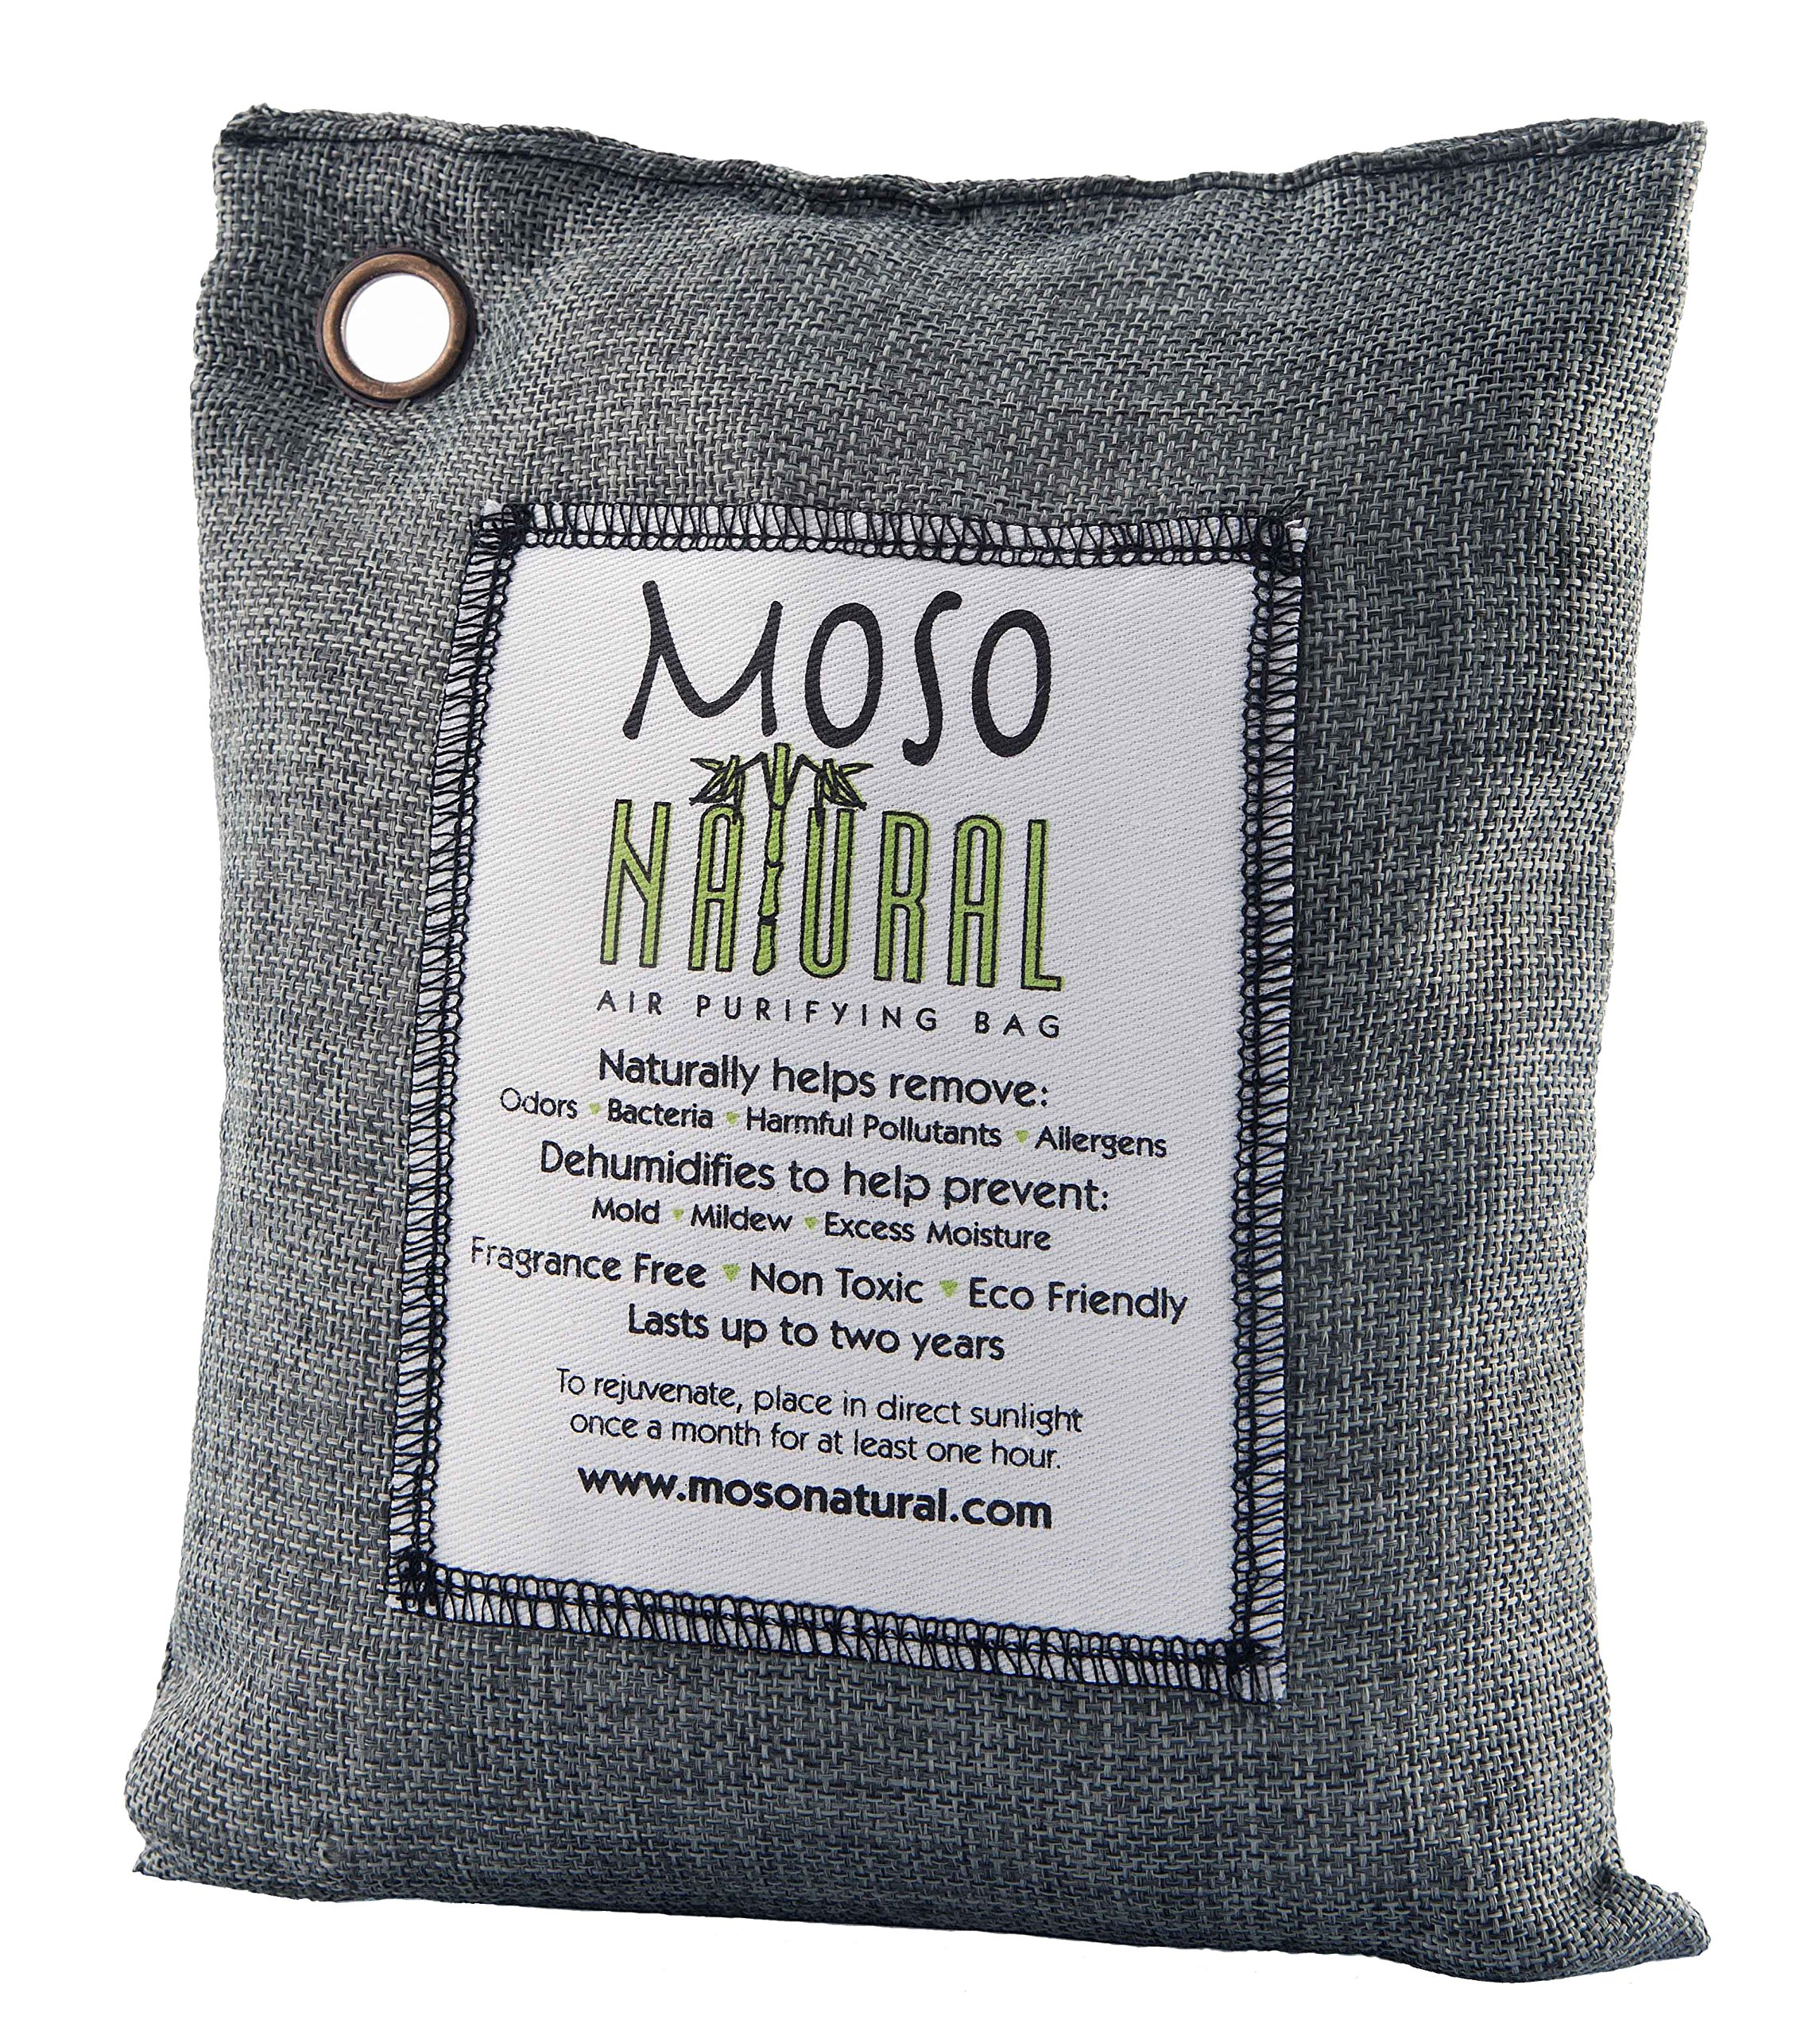 Moso Natural Air Purifying Bag 500-Grams. Charcoal Color. Natural Odor Eliminator. Fragrance Free, Chemical Free, Odor Absorber. Captures and Eliminates Odors.